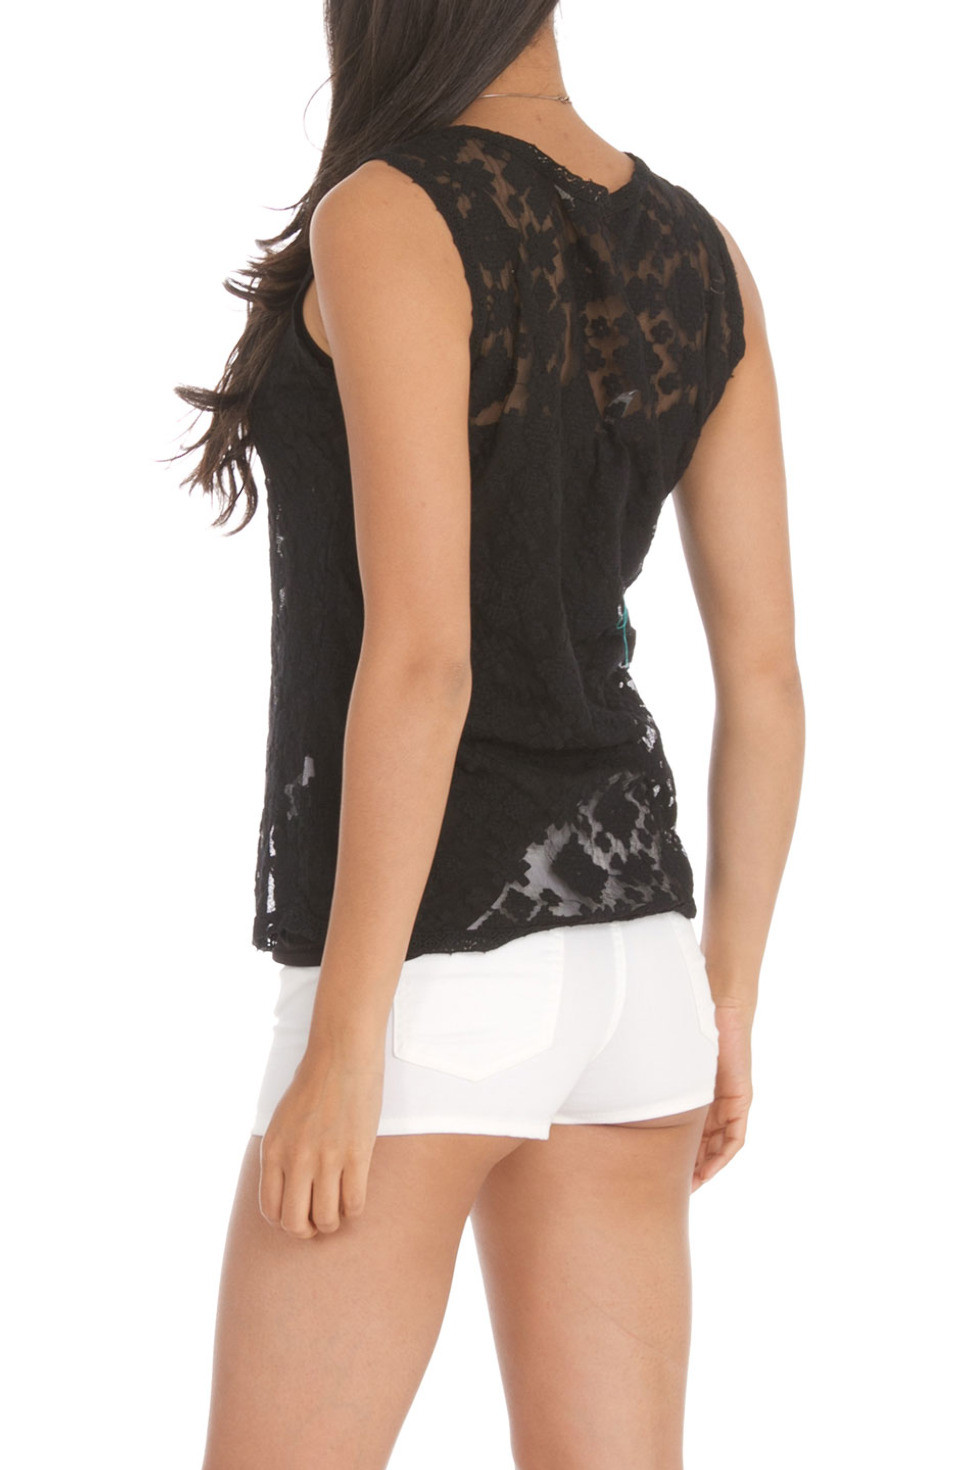 MONORENO BY MUR Detachable Inset Crochet Lace Tank Top in